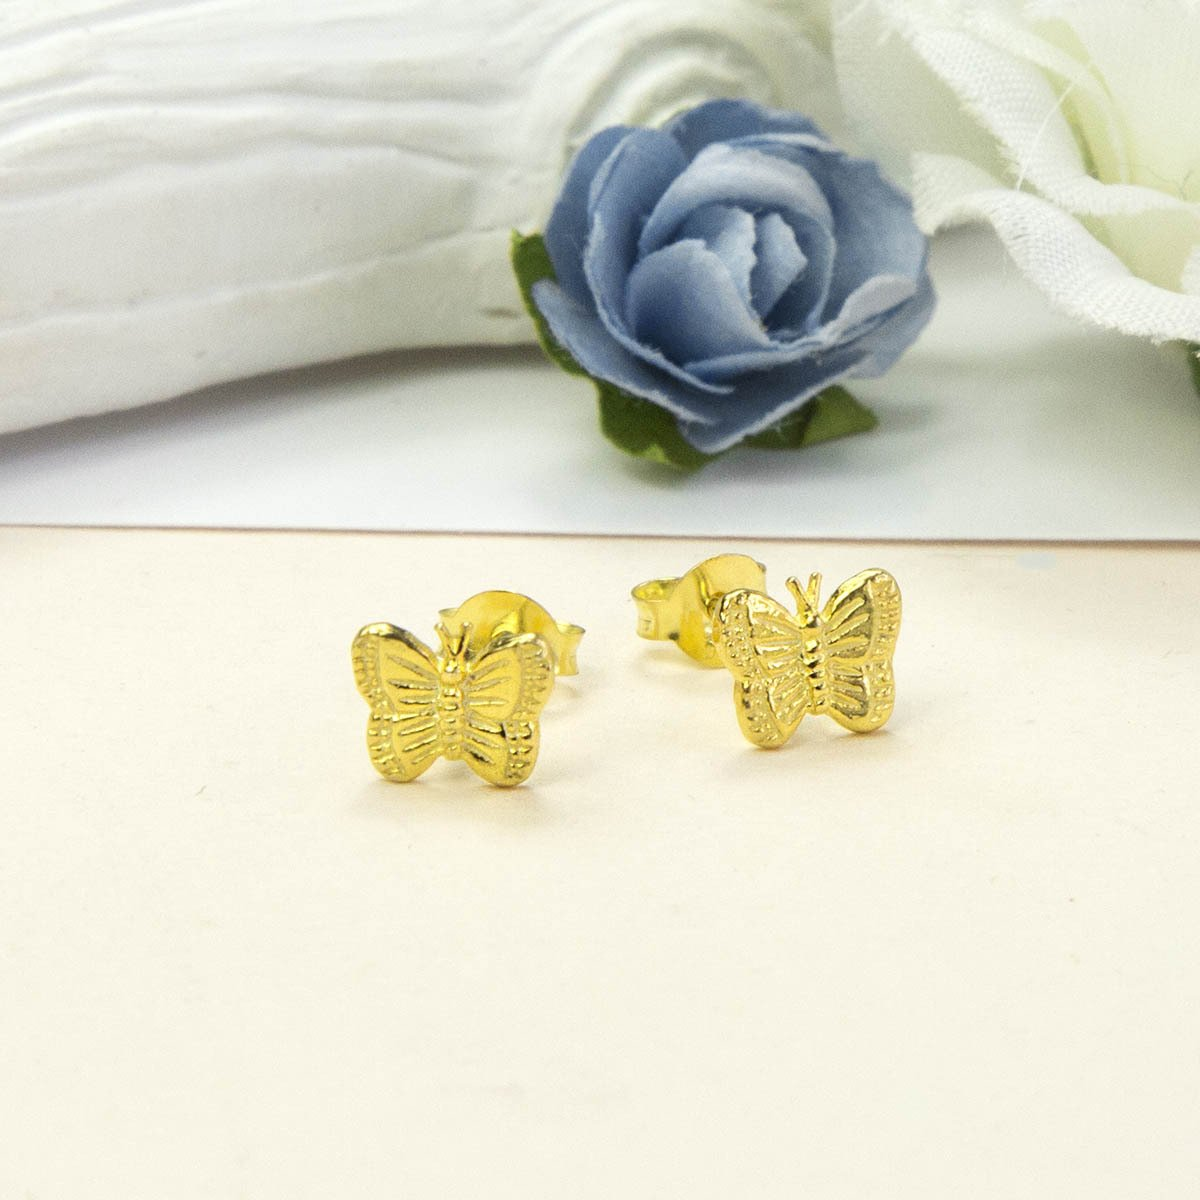 Small Gold Butterfly studs with Blue and white roses in the background